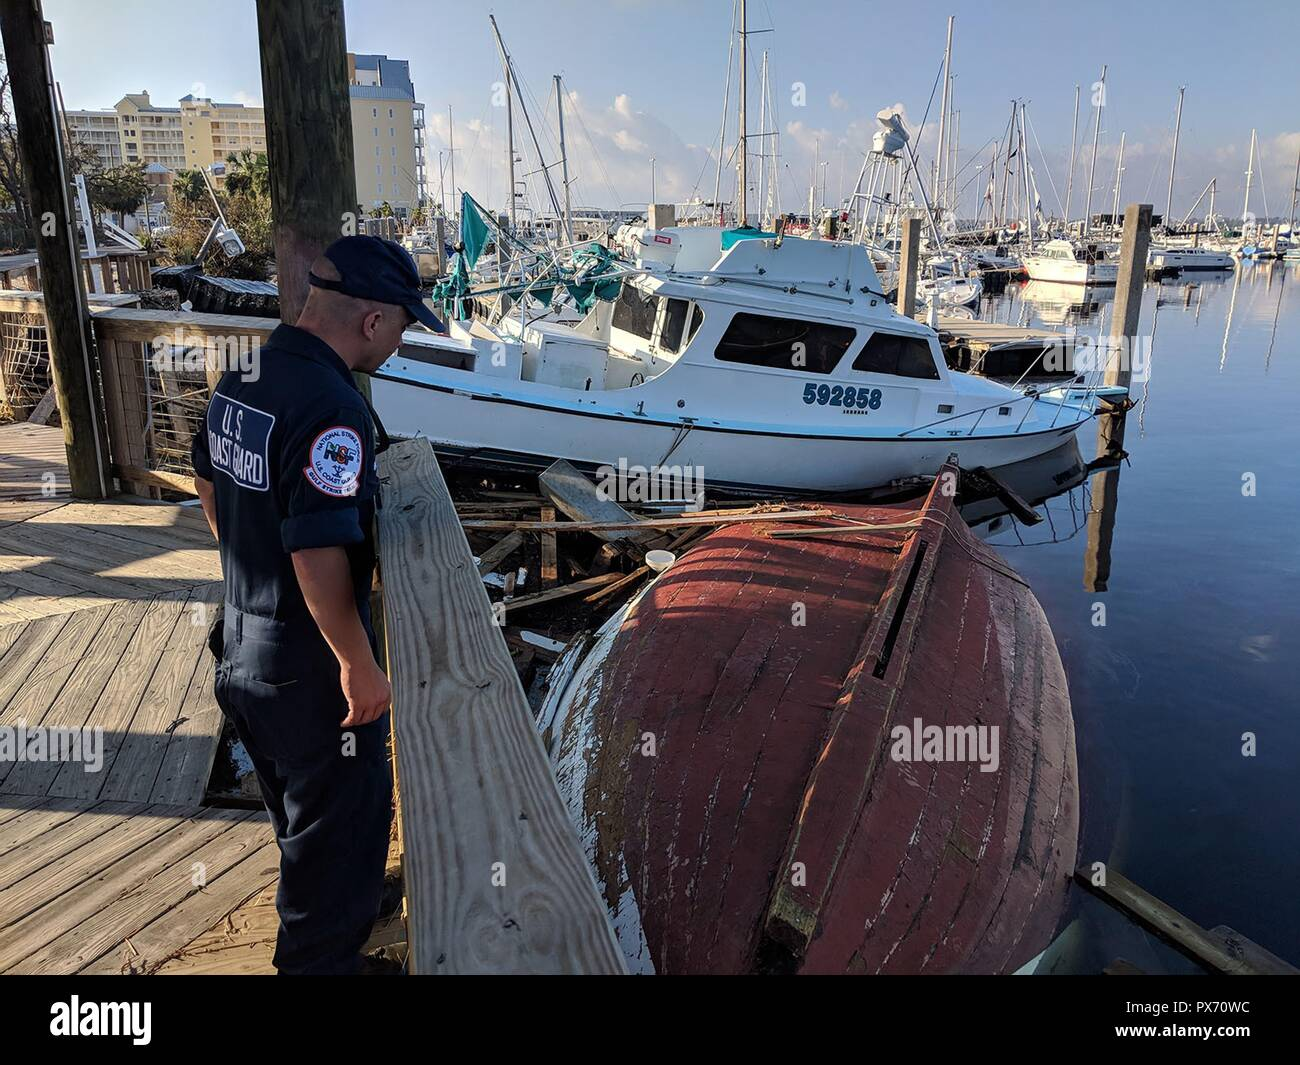 Catastrophic damage to a docks, boats and the marina in the aftermath of Hurricane Michael as the storm left a swath of destruction across the Panhandle region of Florida area October 15, 2018 in Panama City, Florida. The Category 4 monster storm left behind catastrophic damage along northwestern Florida. - Stock Image